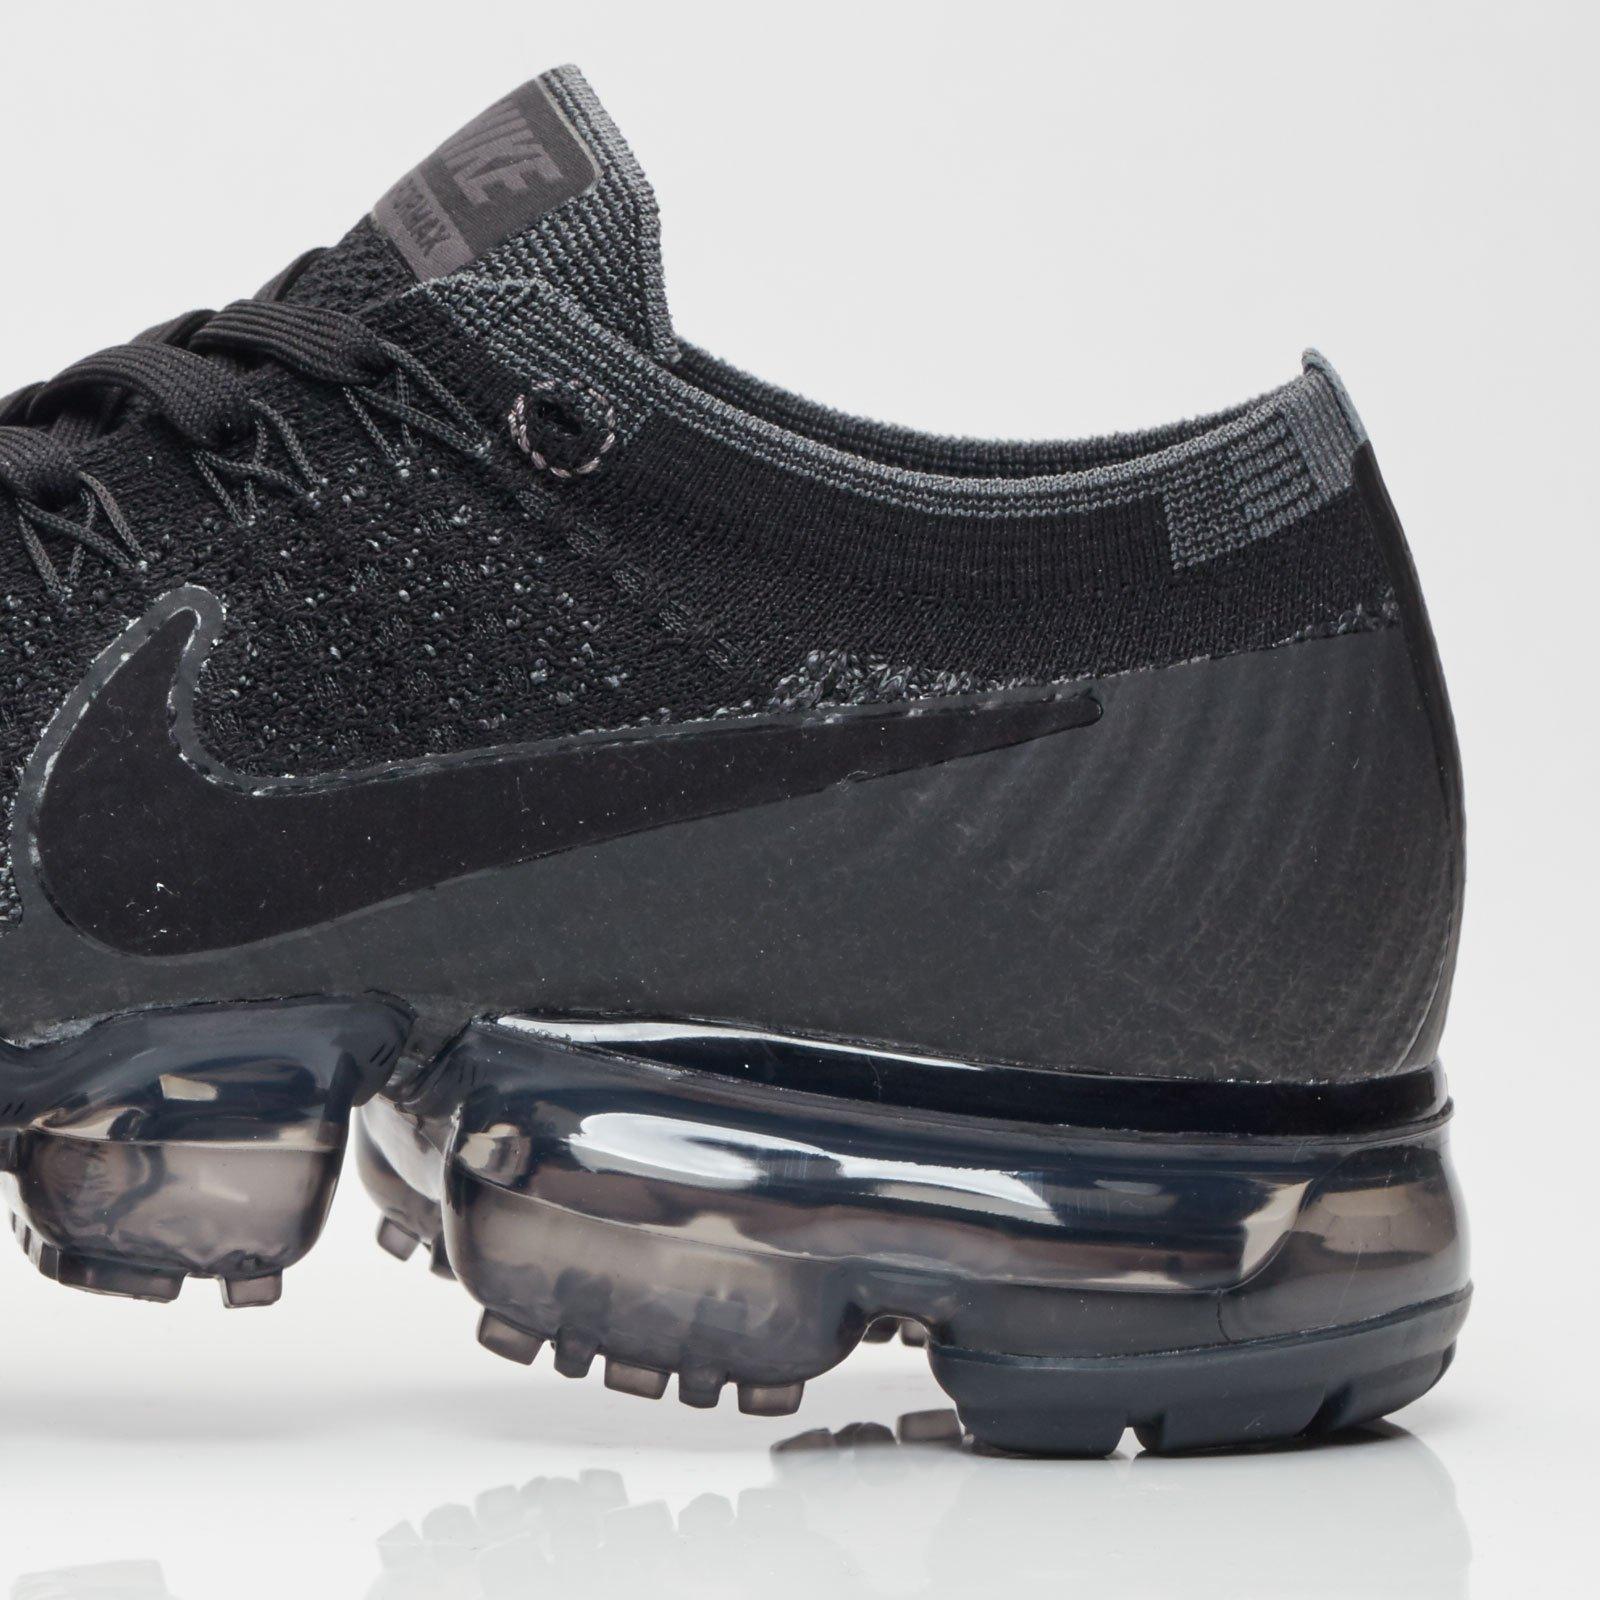 new product 520d4 981e5 ... Air Max Vapormax Flyknit - 6. Close